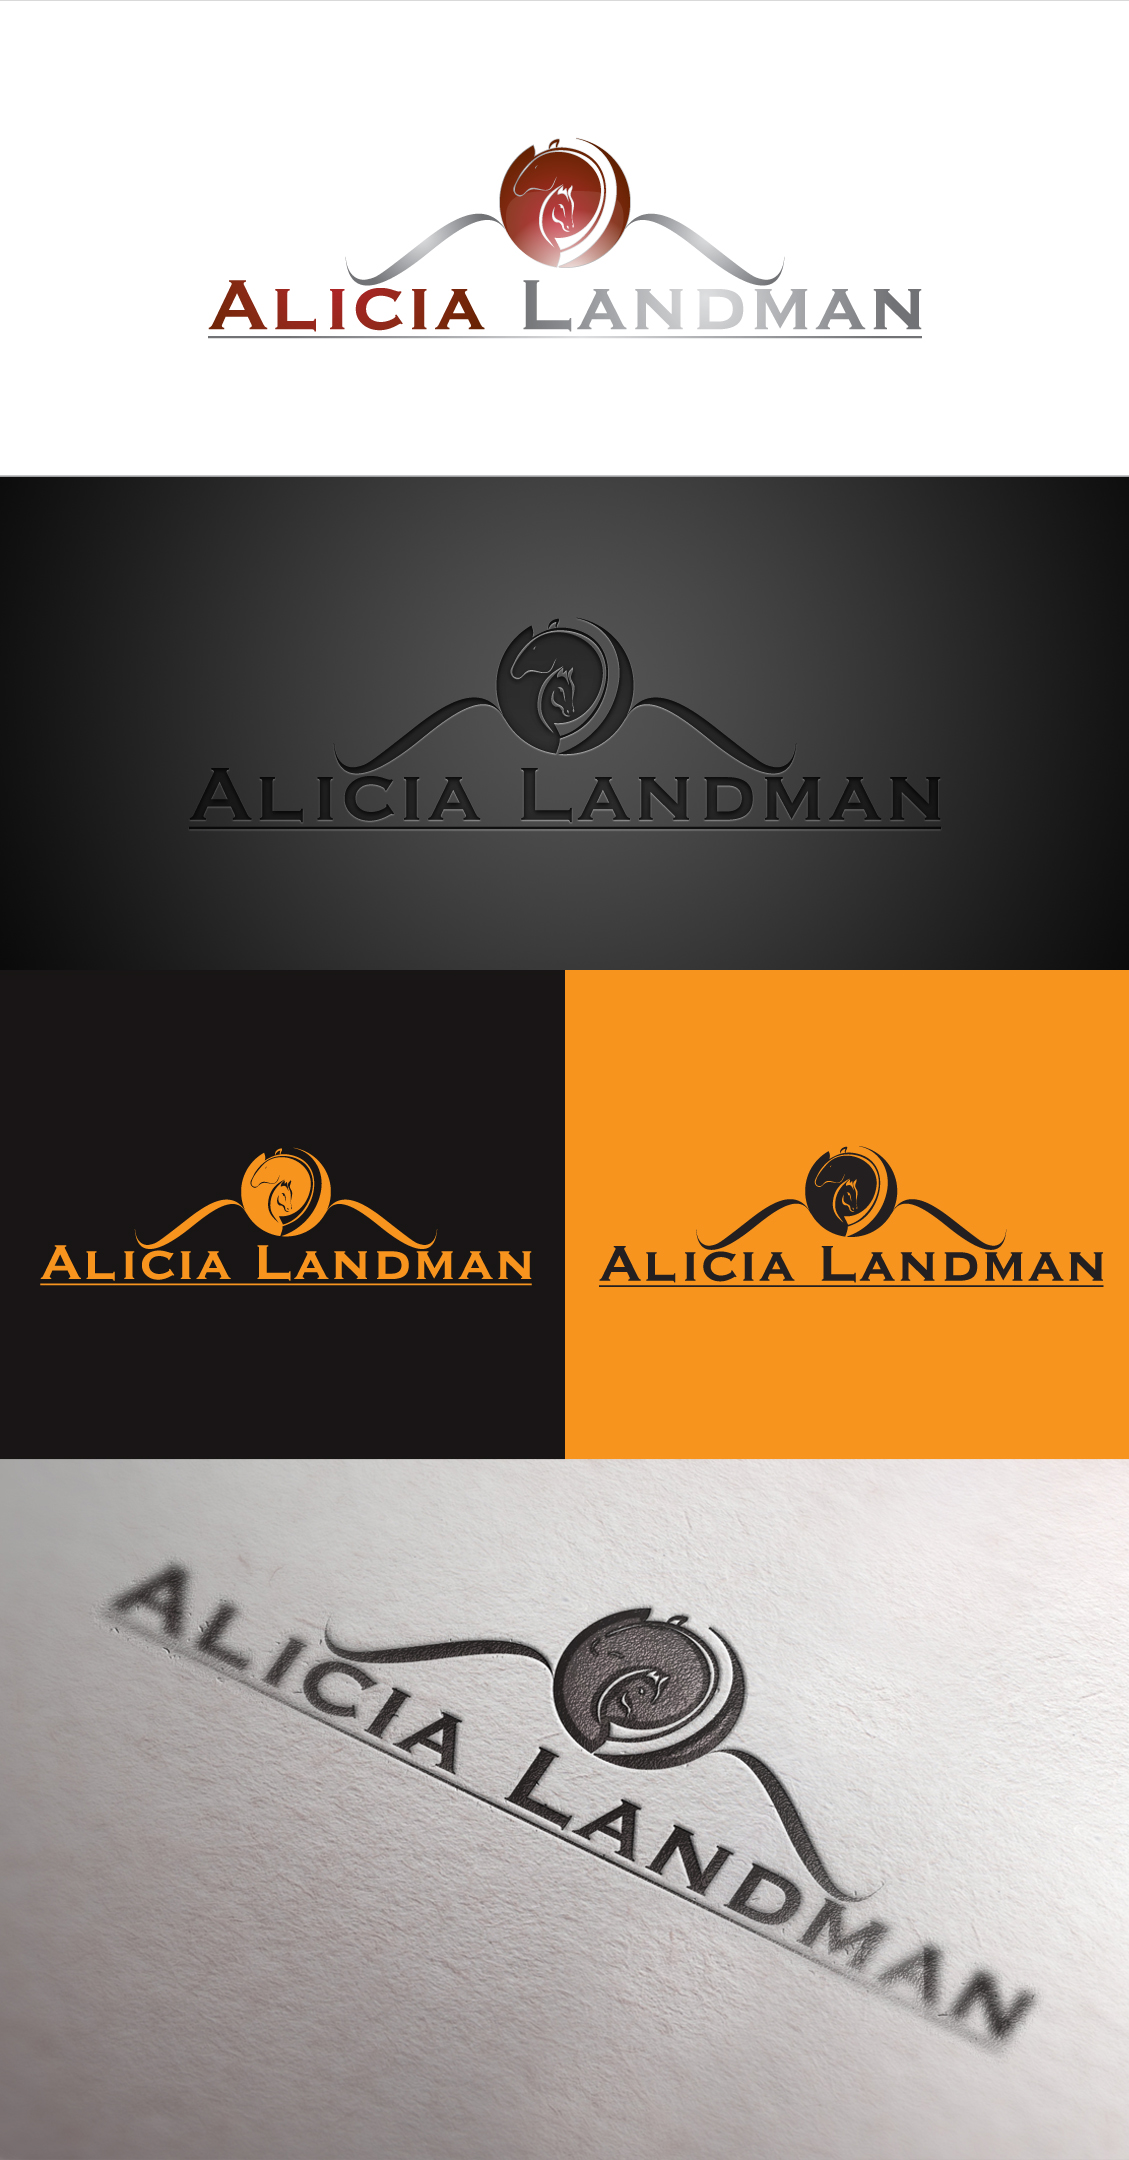 Logo Design by Shujaat Jaffri - Entry No. 126 in the Logo Design Contest Fun Logo Design for Alicia Landman.